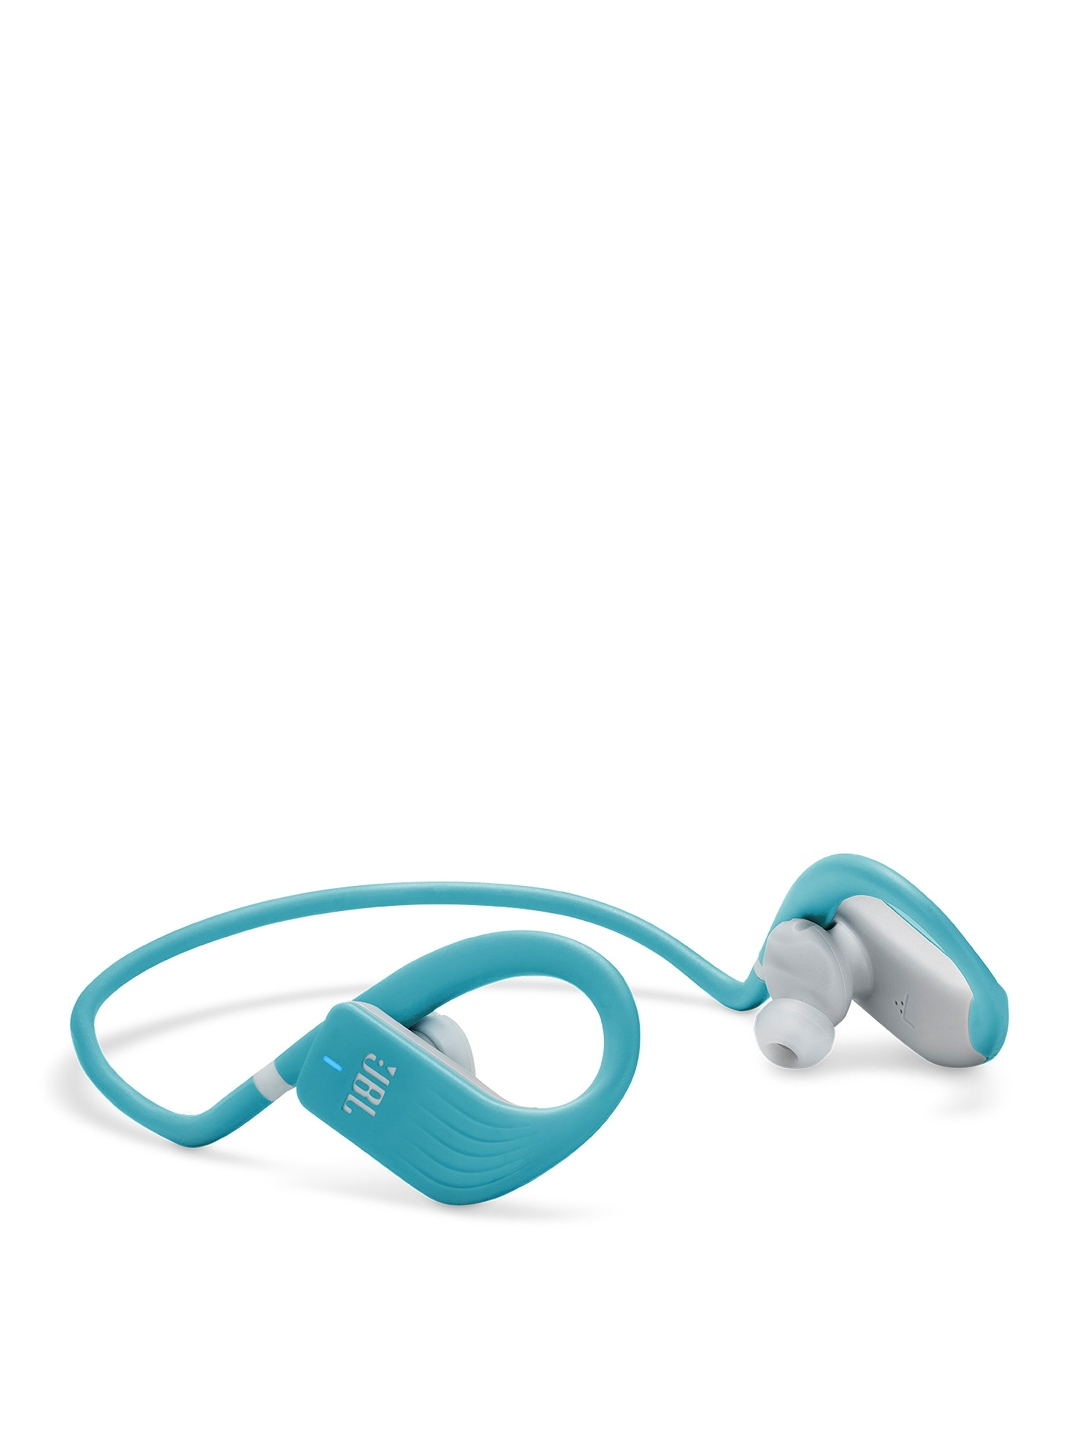 66b67ec5982 Buy JBL Unisex Teal Blue Endurance Jump Wireless Headphones ...